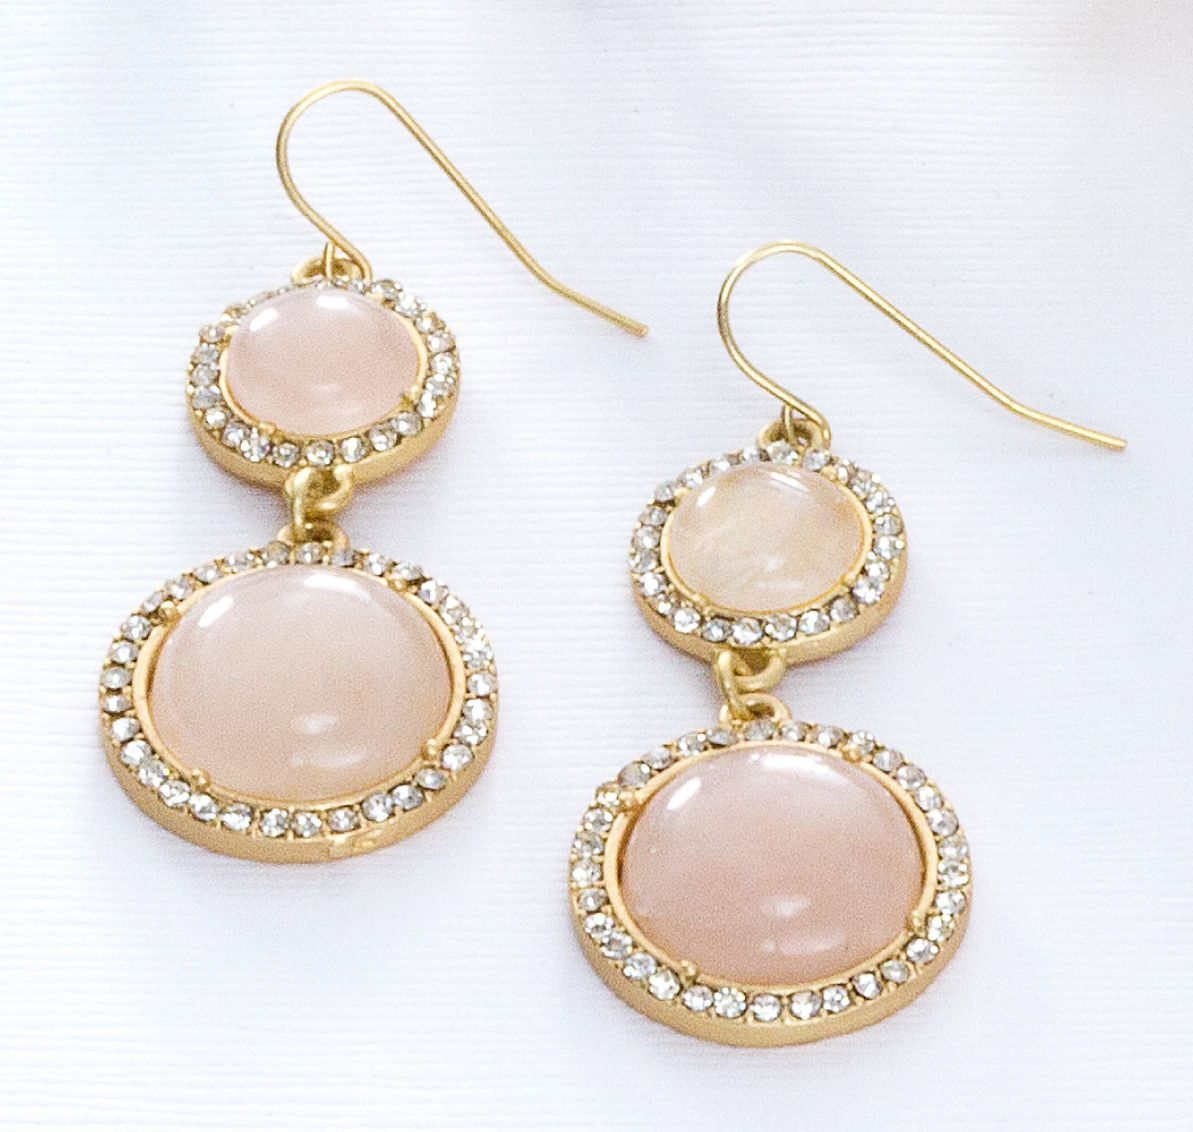 The elegant neutral earrings with taupe stones and surrounding crystals are more formal and perfect for an event like a wedding. Guy & Eva's Rhonda earrings, $44.